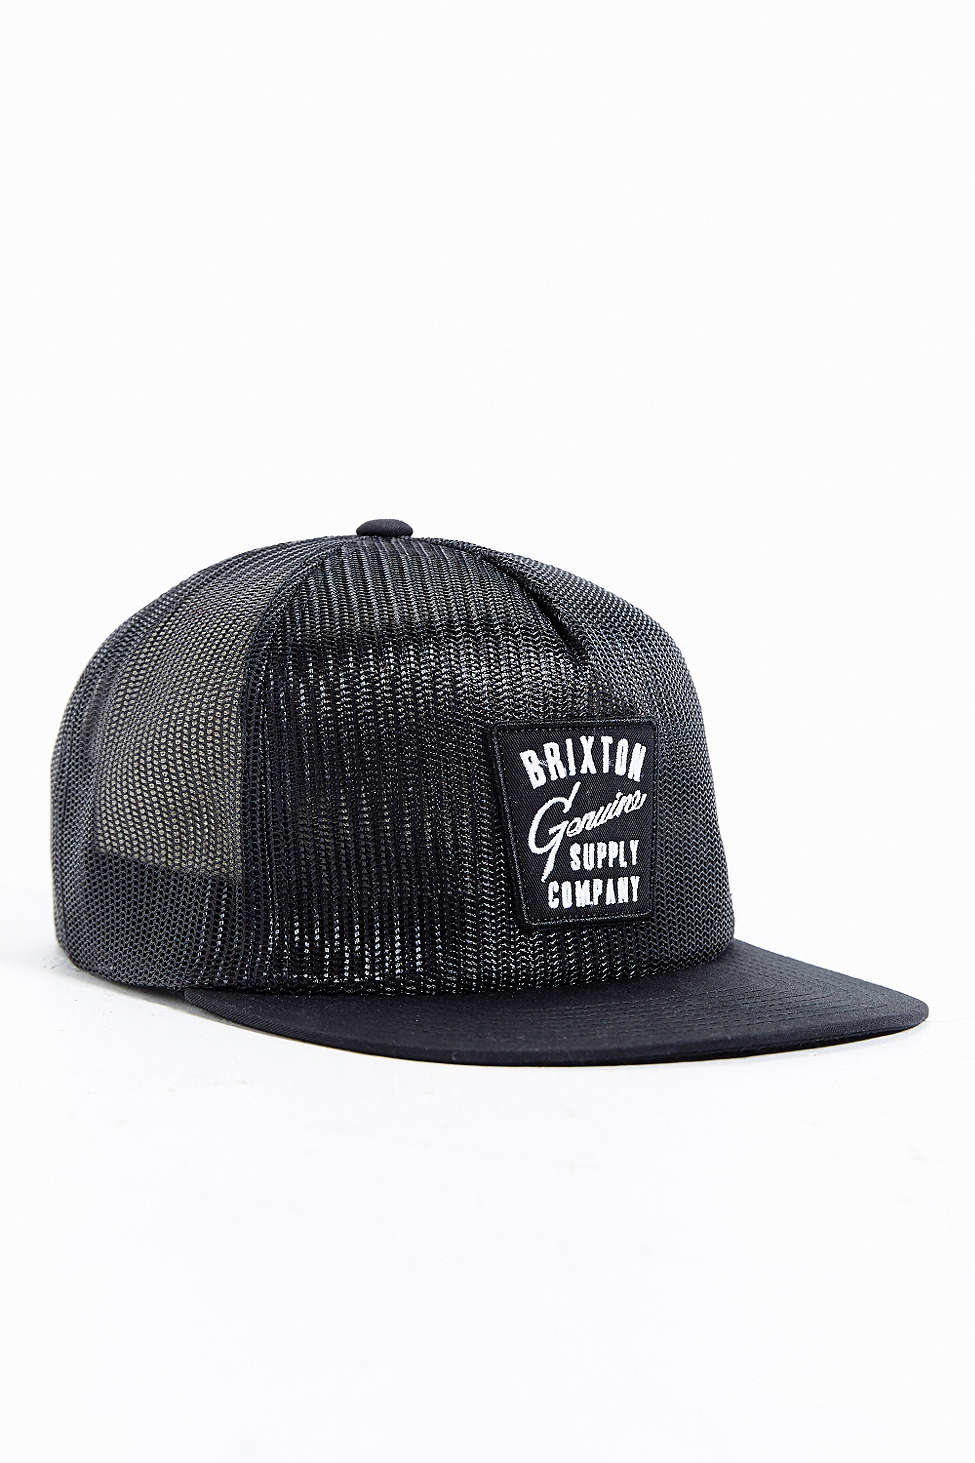 Lyst - Brixton Mesh Trucker Hat in Black for Men 1dea938f34a